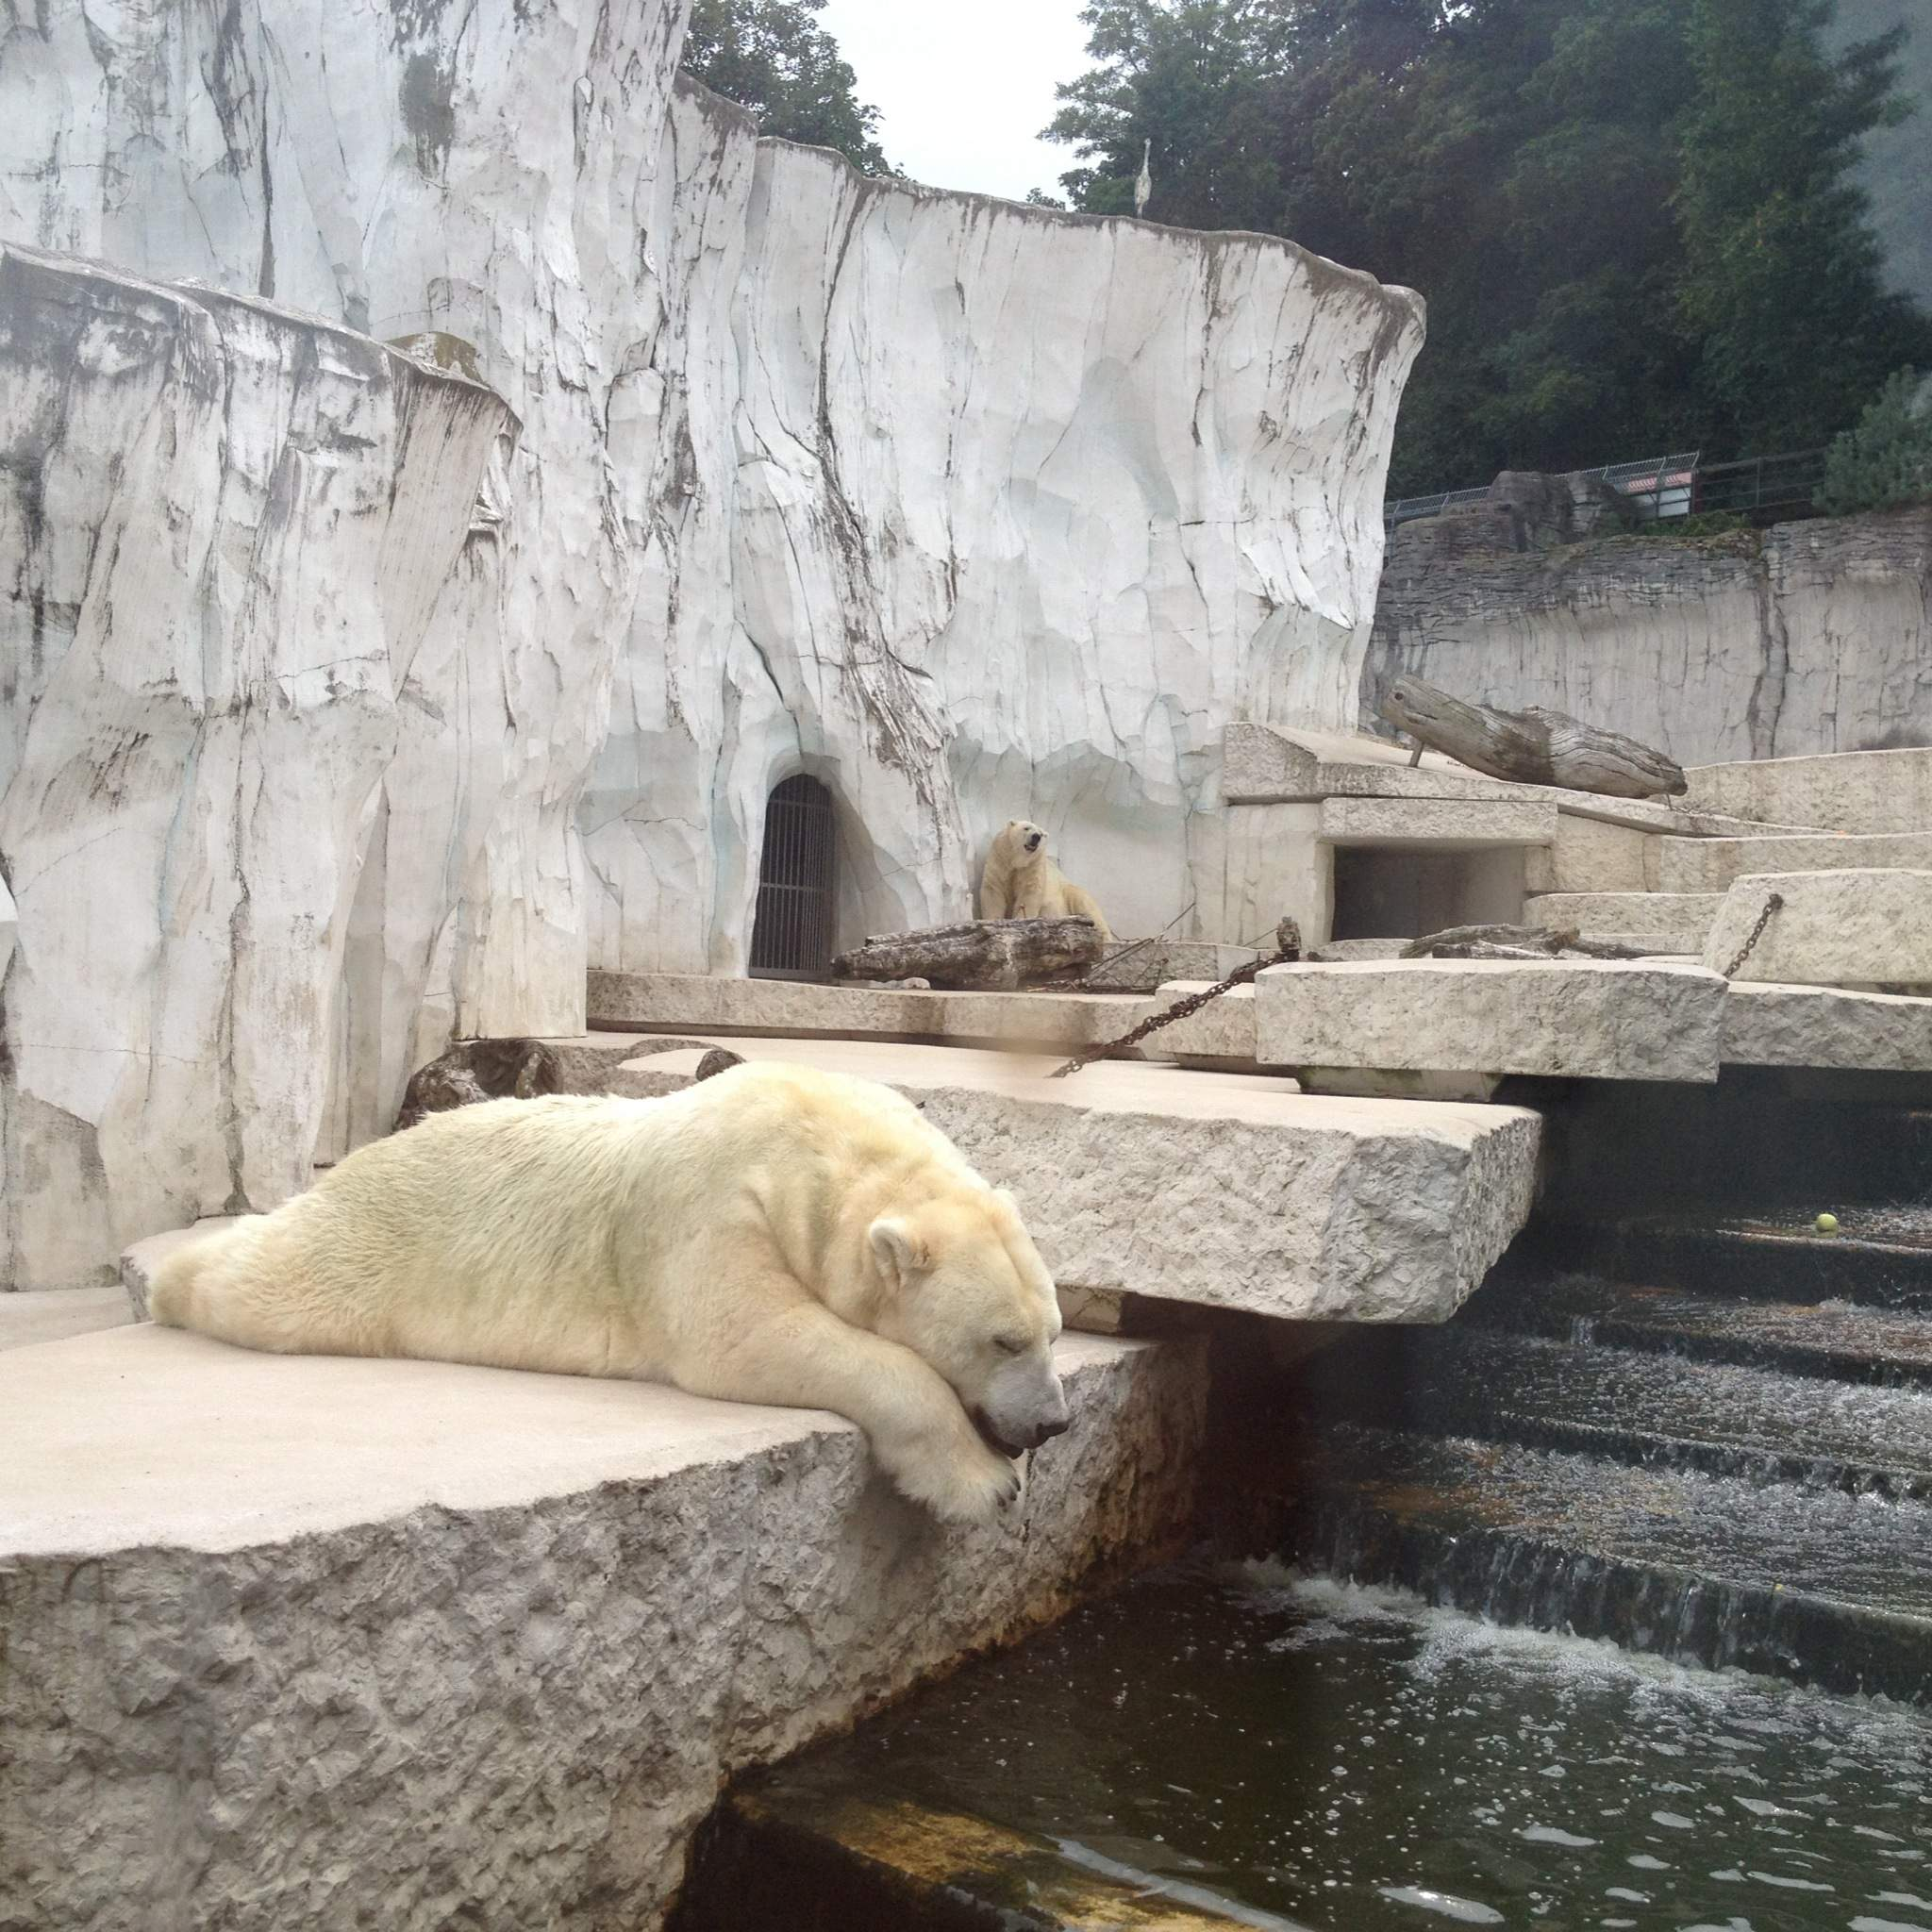 Polar bear at Karlsruhe Zoo